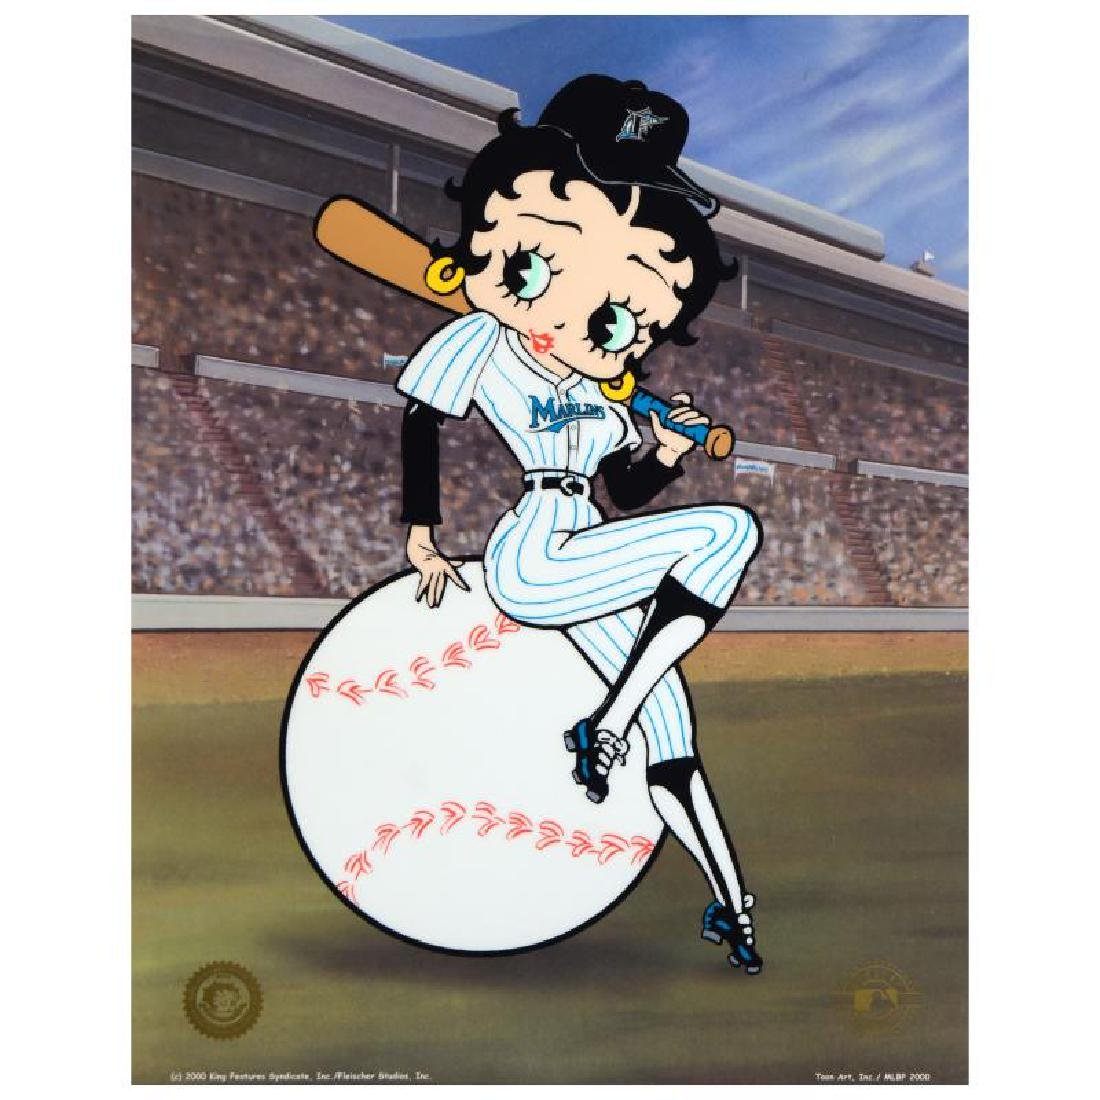 Betty On Deck - Marlins by King Features Syndicate,